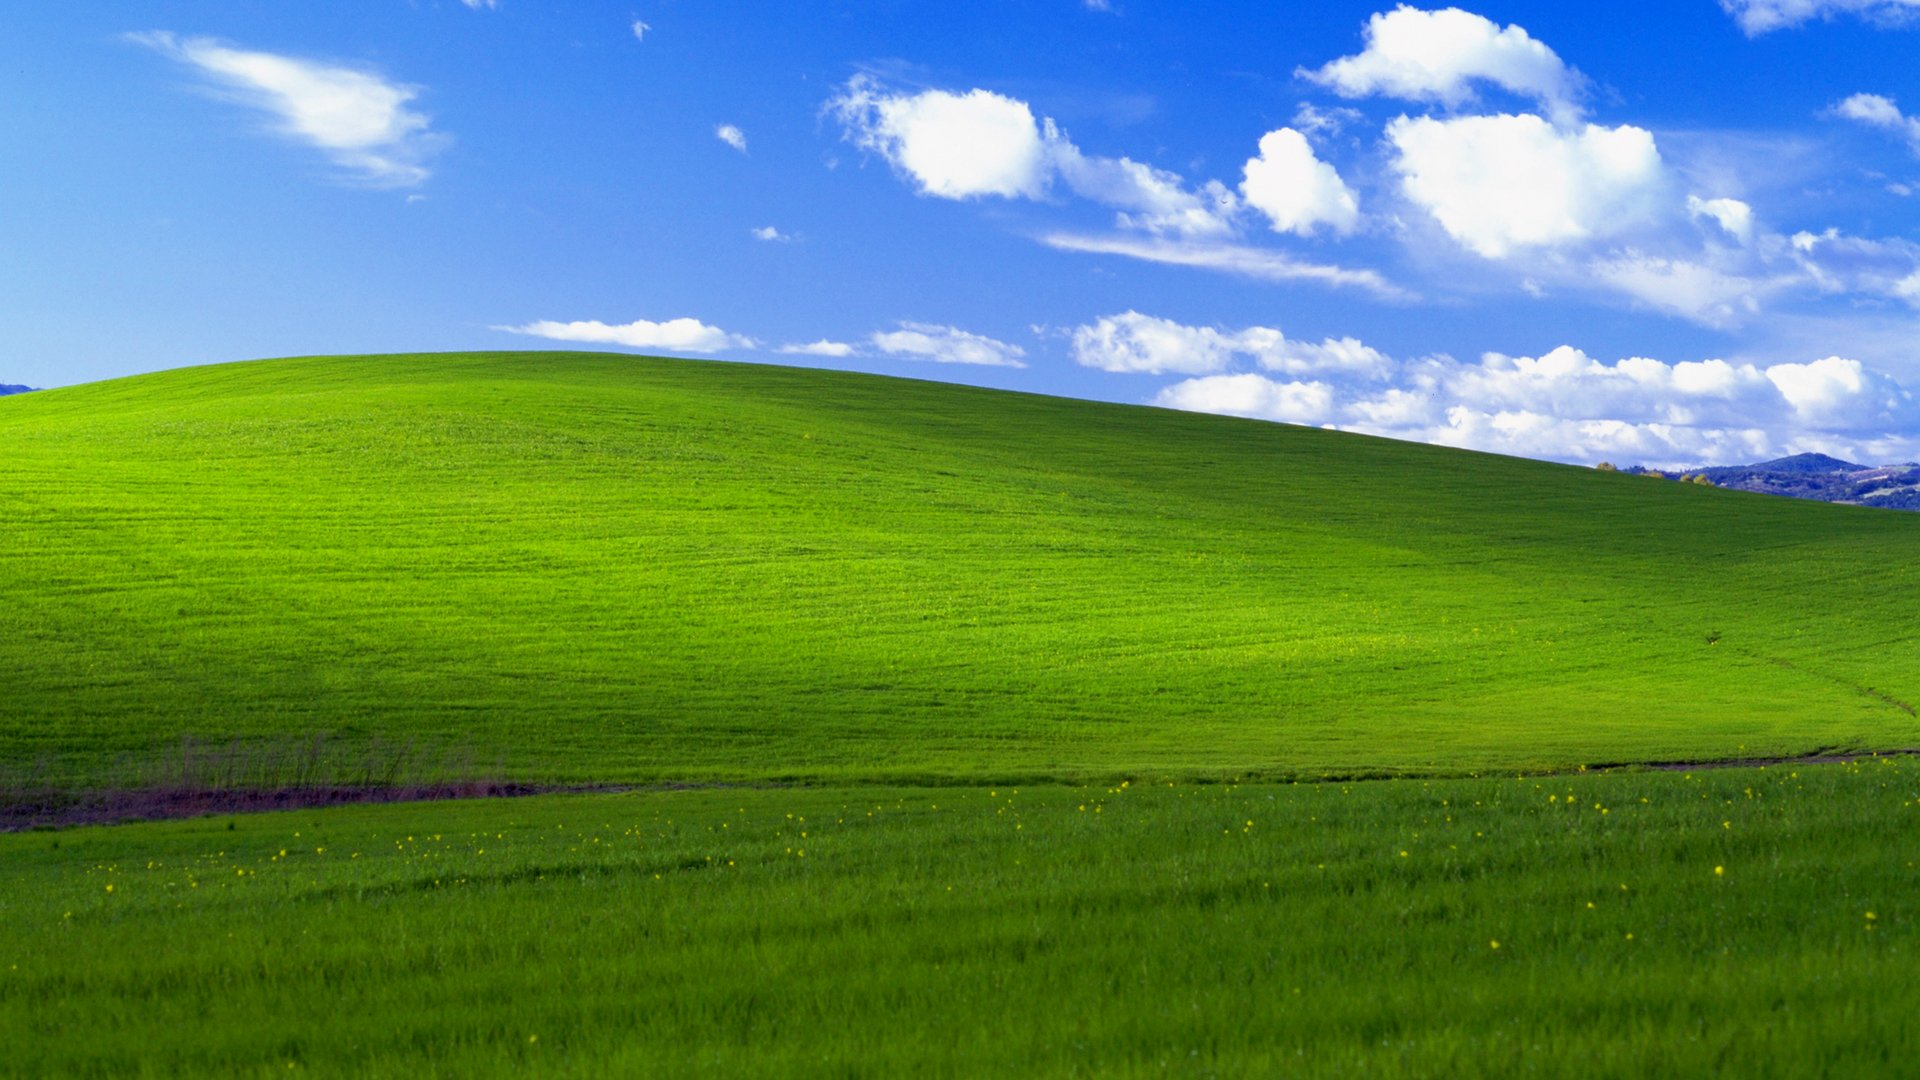 Charles O'Rear - WindowsXP Bliss Screen, Sonoma County (1996) cult desktop photo immagine famosa windows cultstories iconic nerd software bill gates cultgallery cult stories cultstories cinema cult story cultstory art culture music ipse dixit aneddoti citazioni frasi famose aforismi immagini foto personaggi cultura musica storie facts fatti celebrità vip cult spettacoli live performance concerto